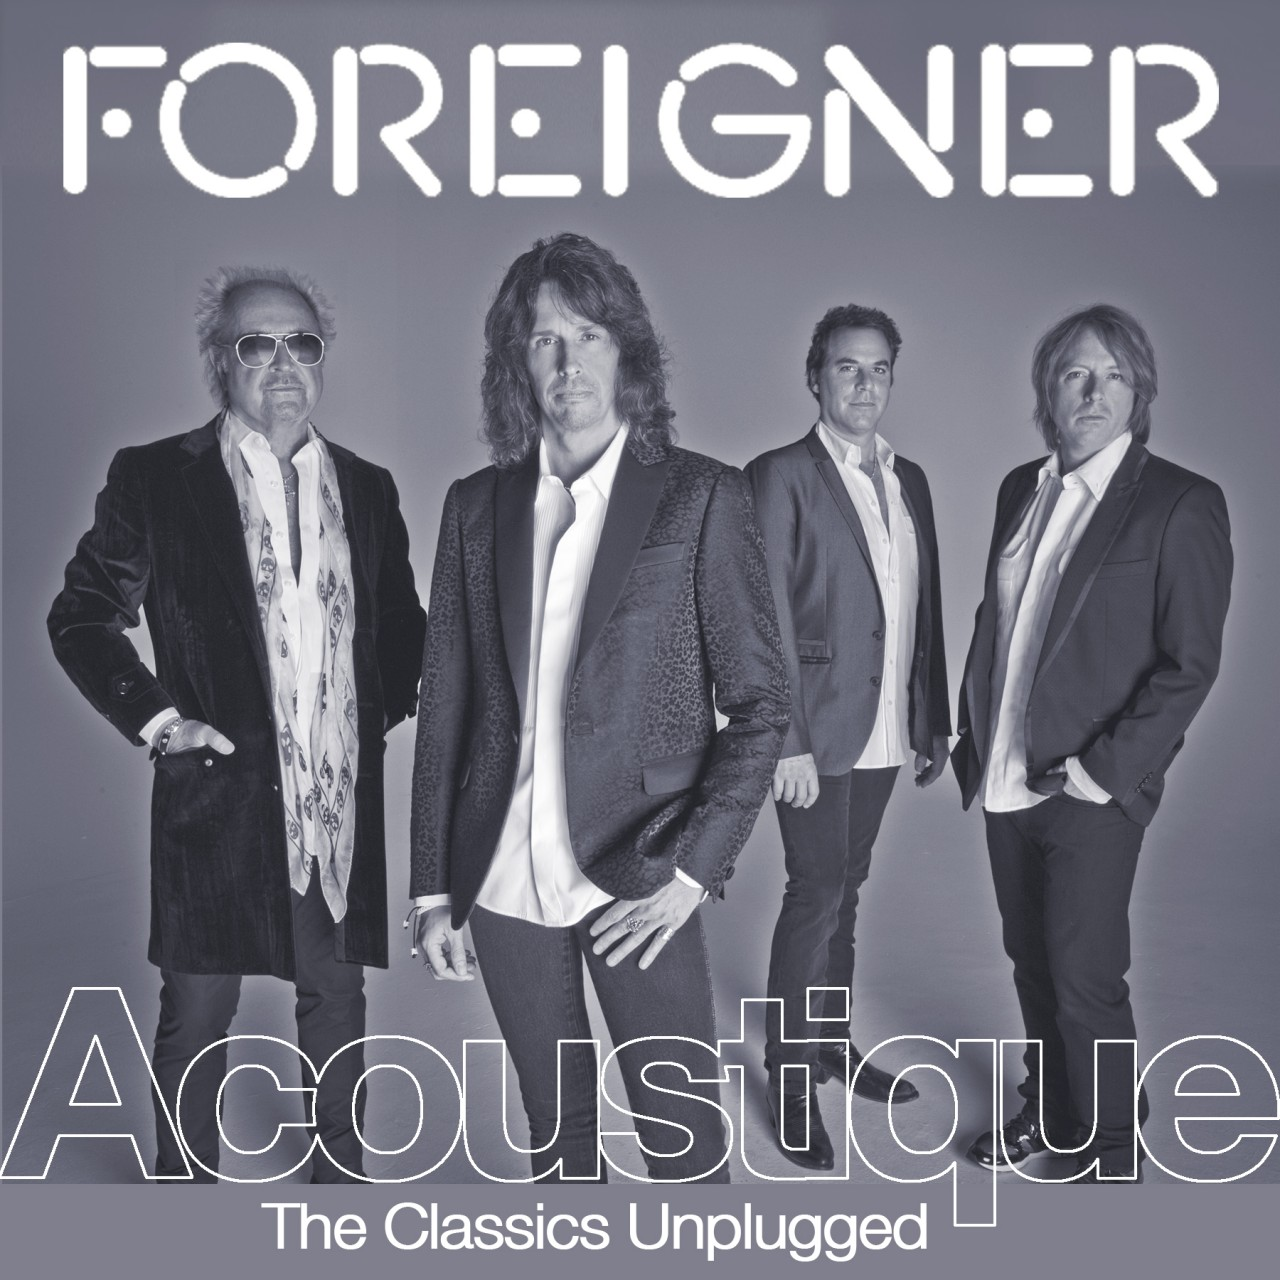 the foreigner - photo #24